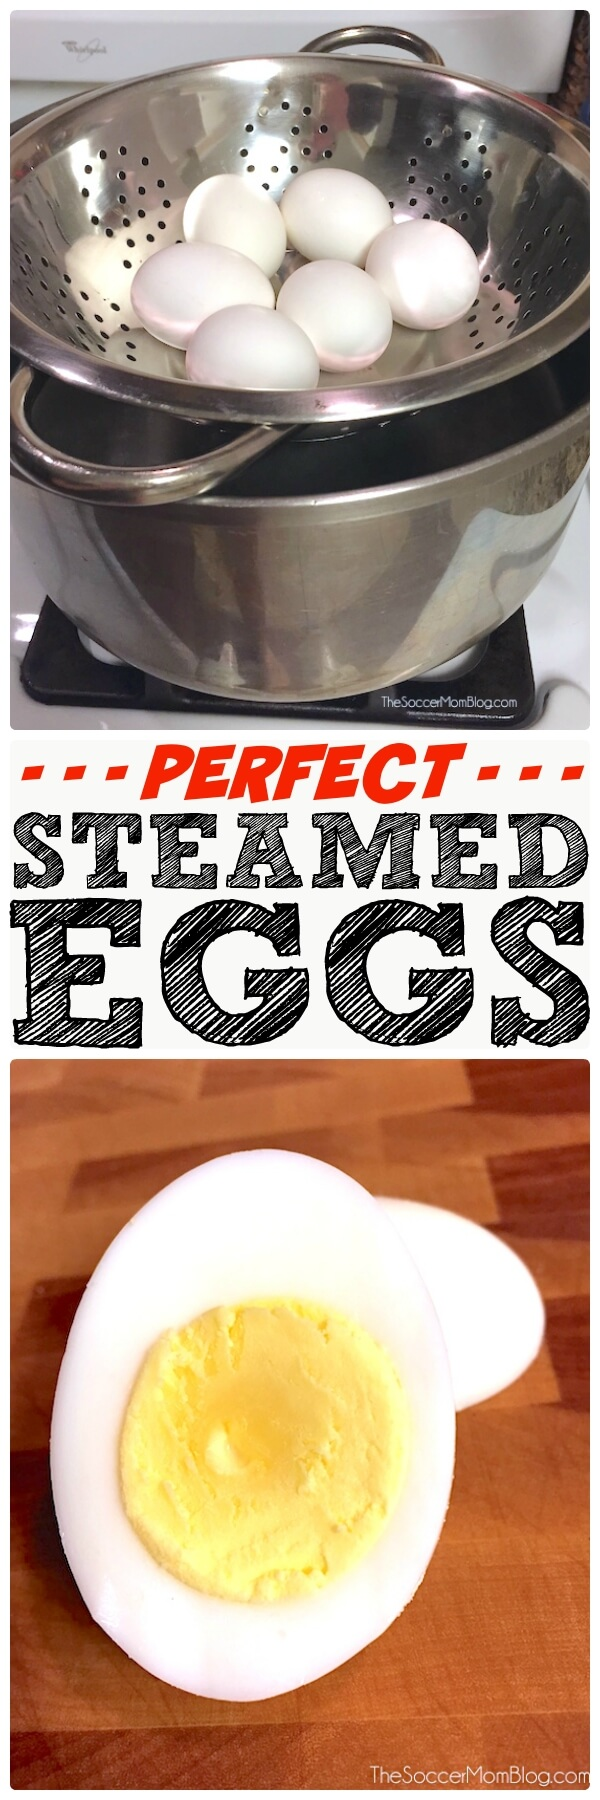 "You're going to love this easy kitchen hack for perfect ""hard-boiled eggs"" every time! Step-by-step photo recipe teaches how to steam eggs."